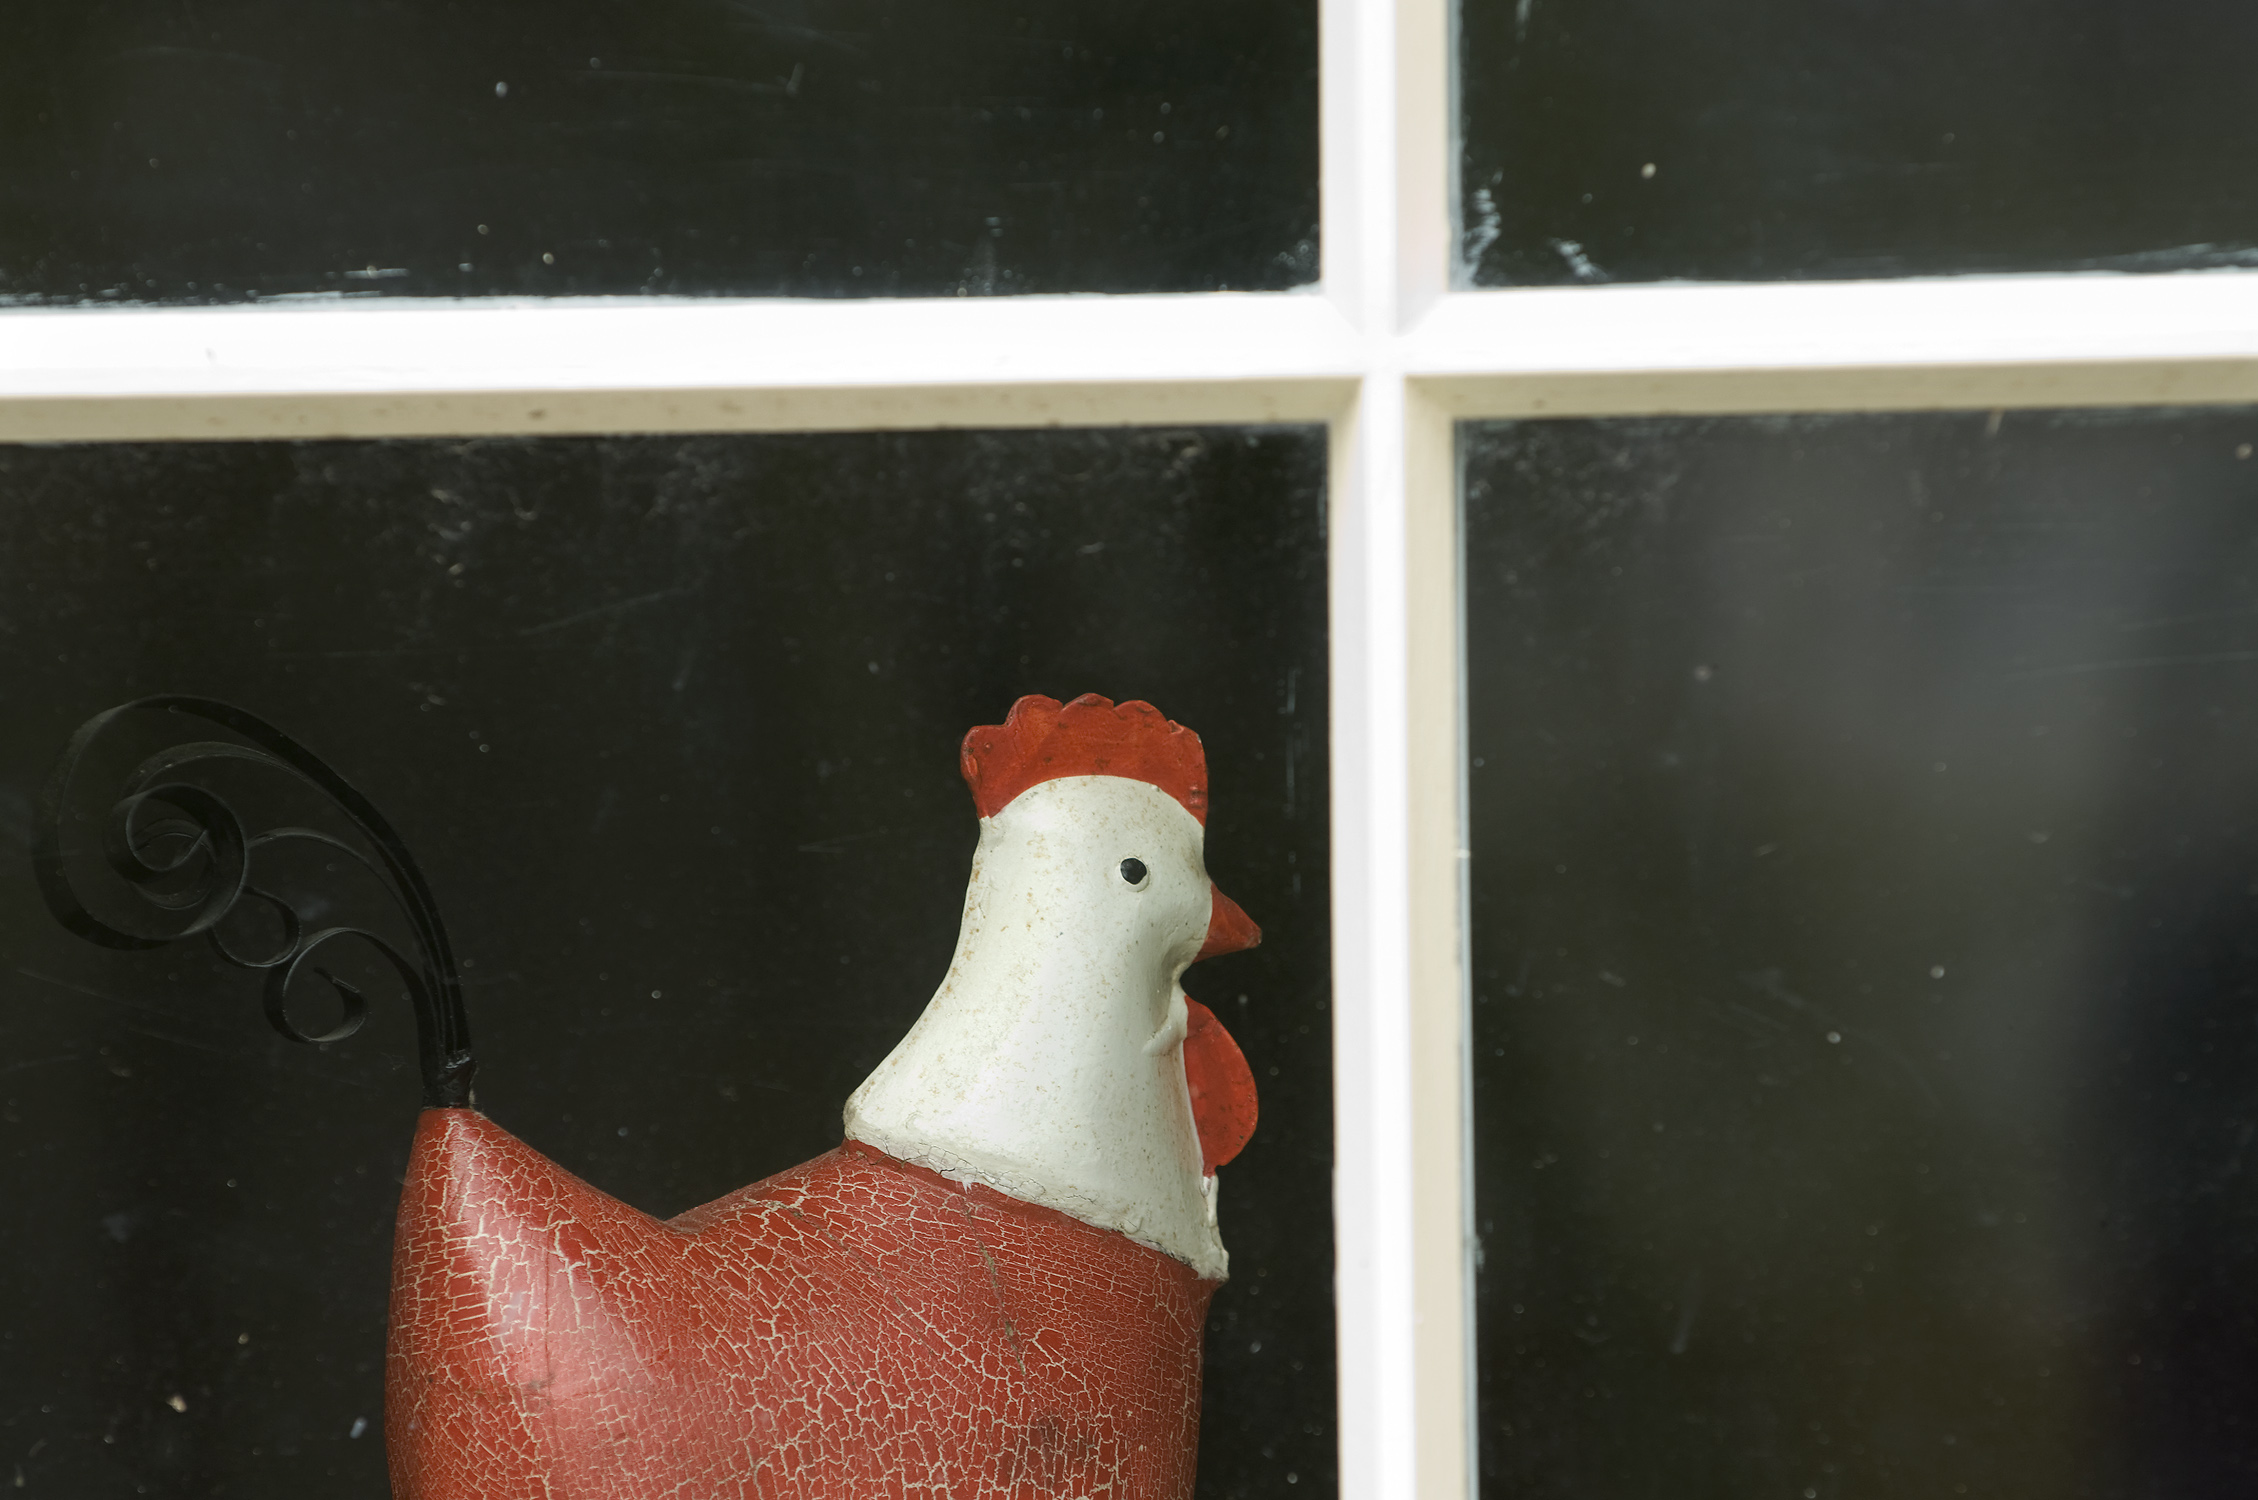 A window showing a ceramic Chicken ornament